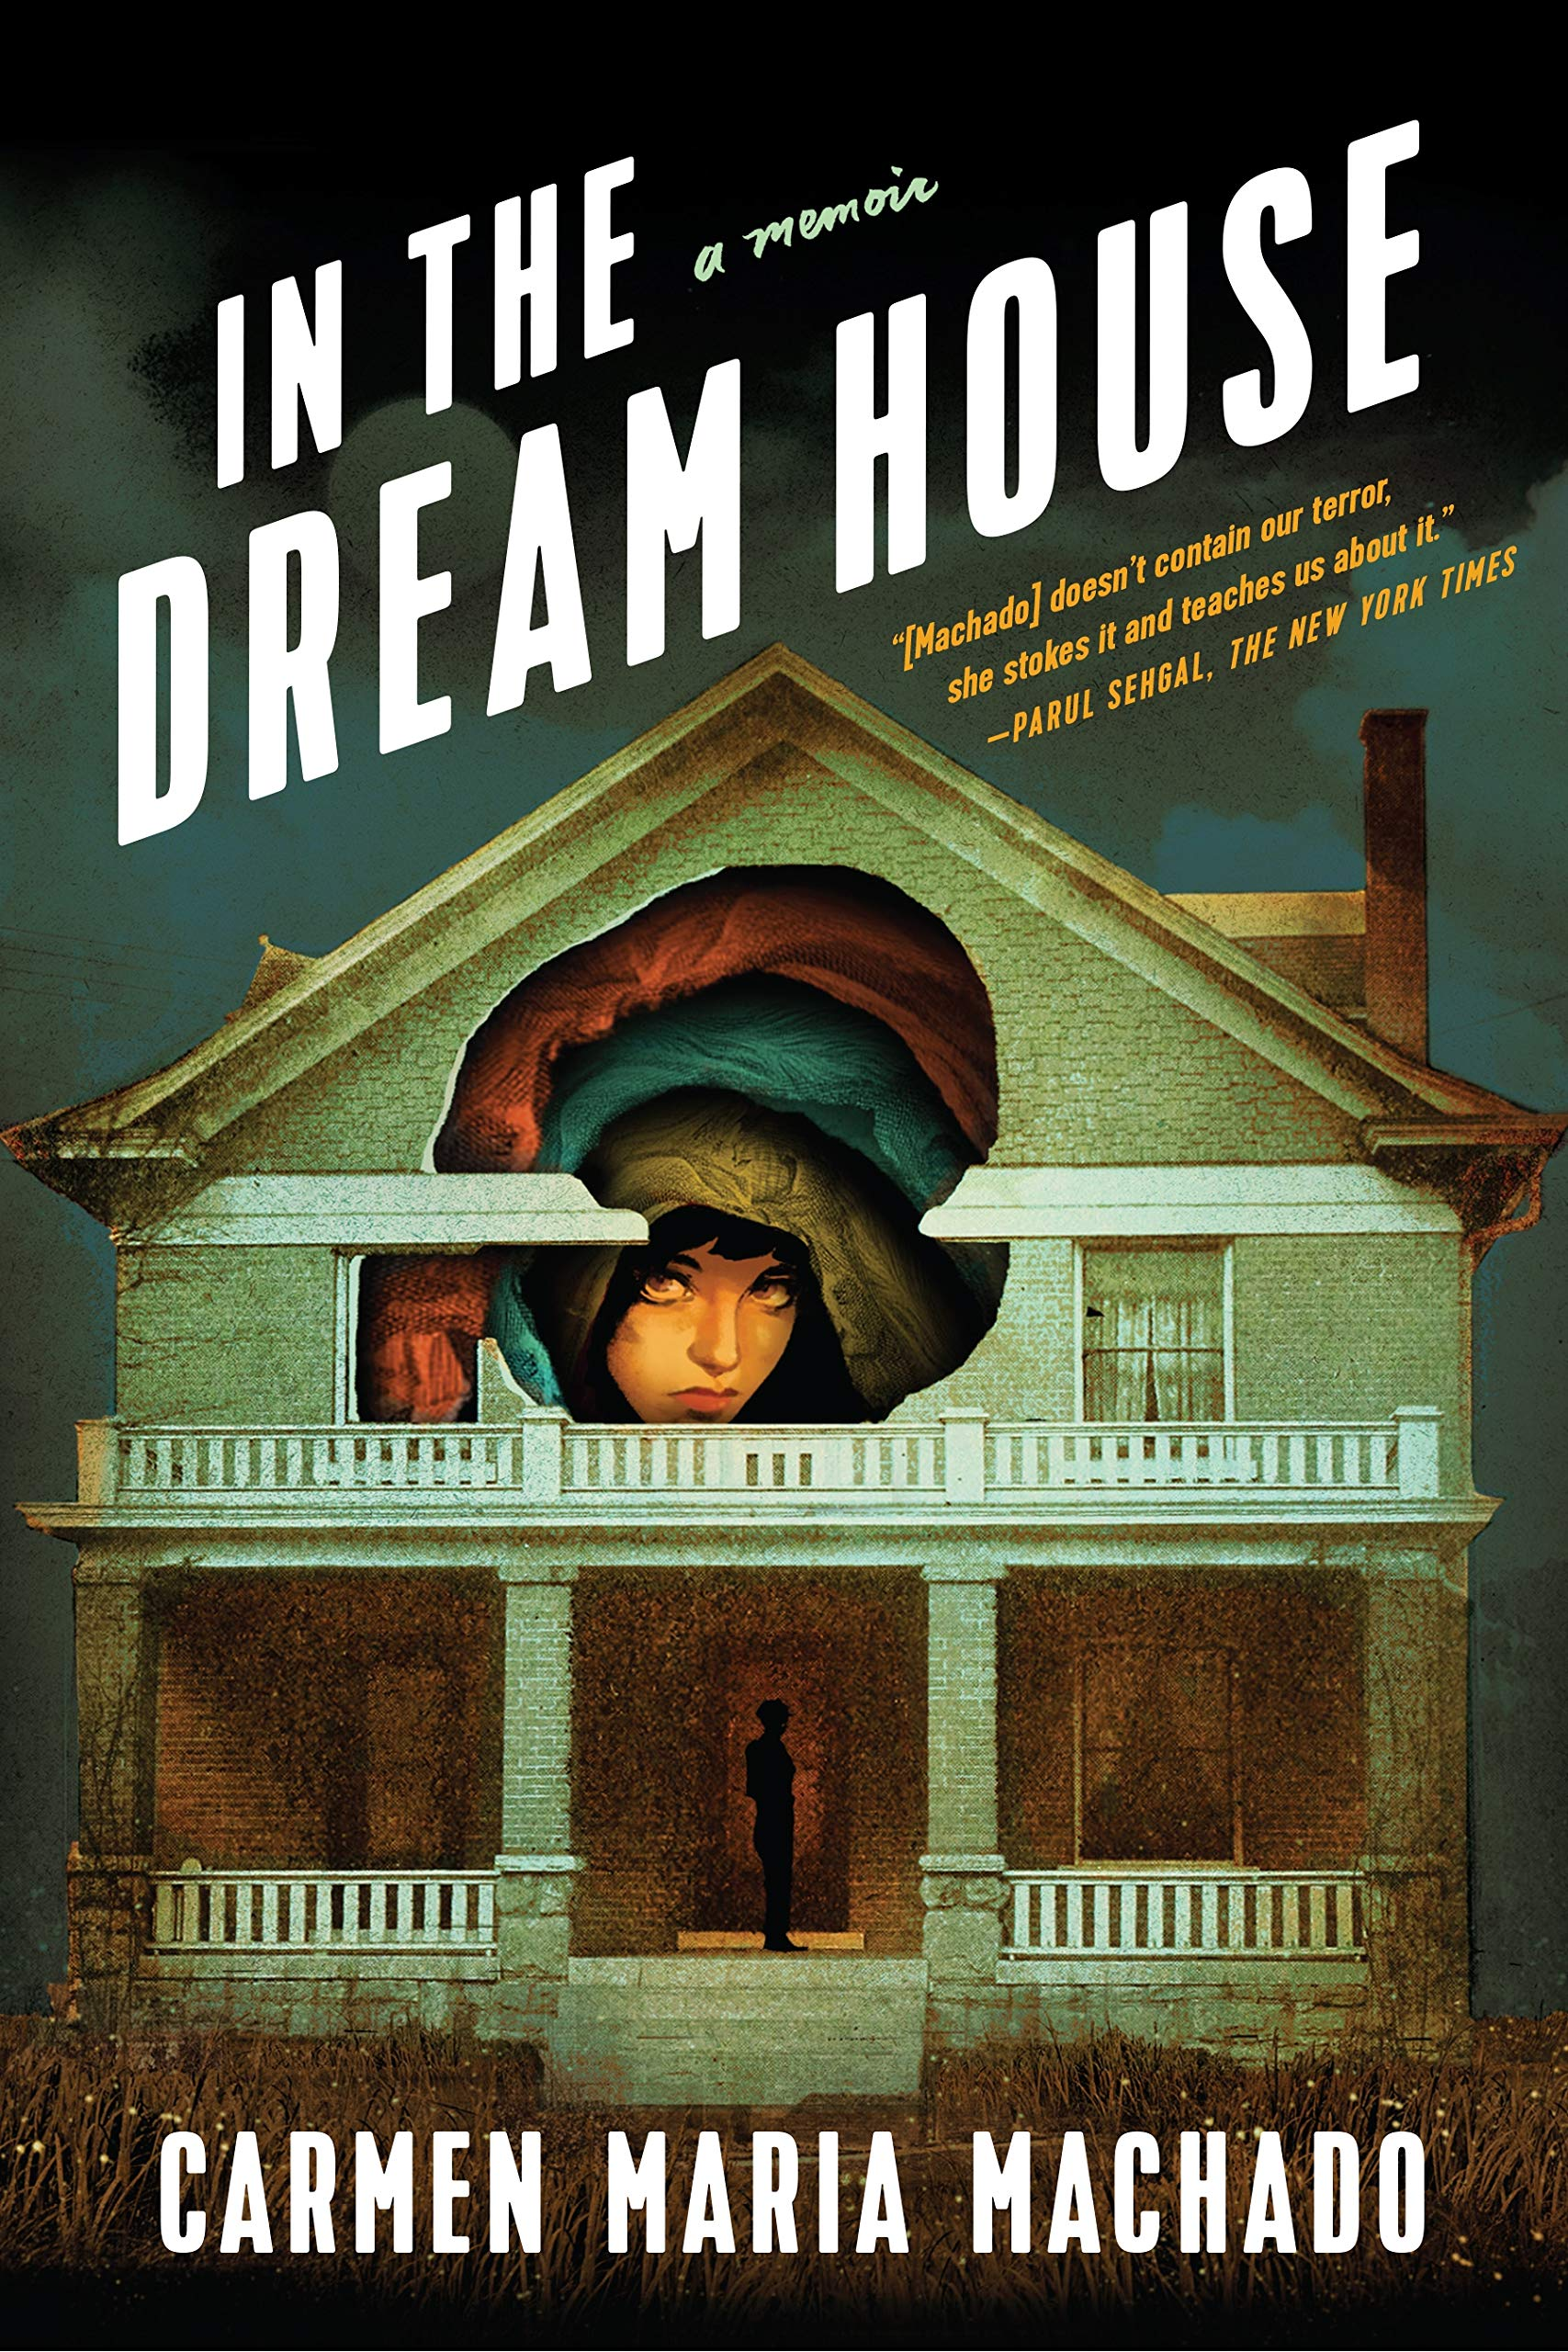 Review of In the Dream House